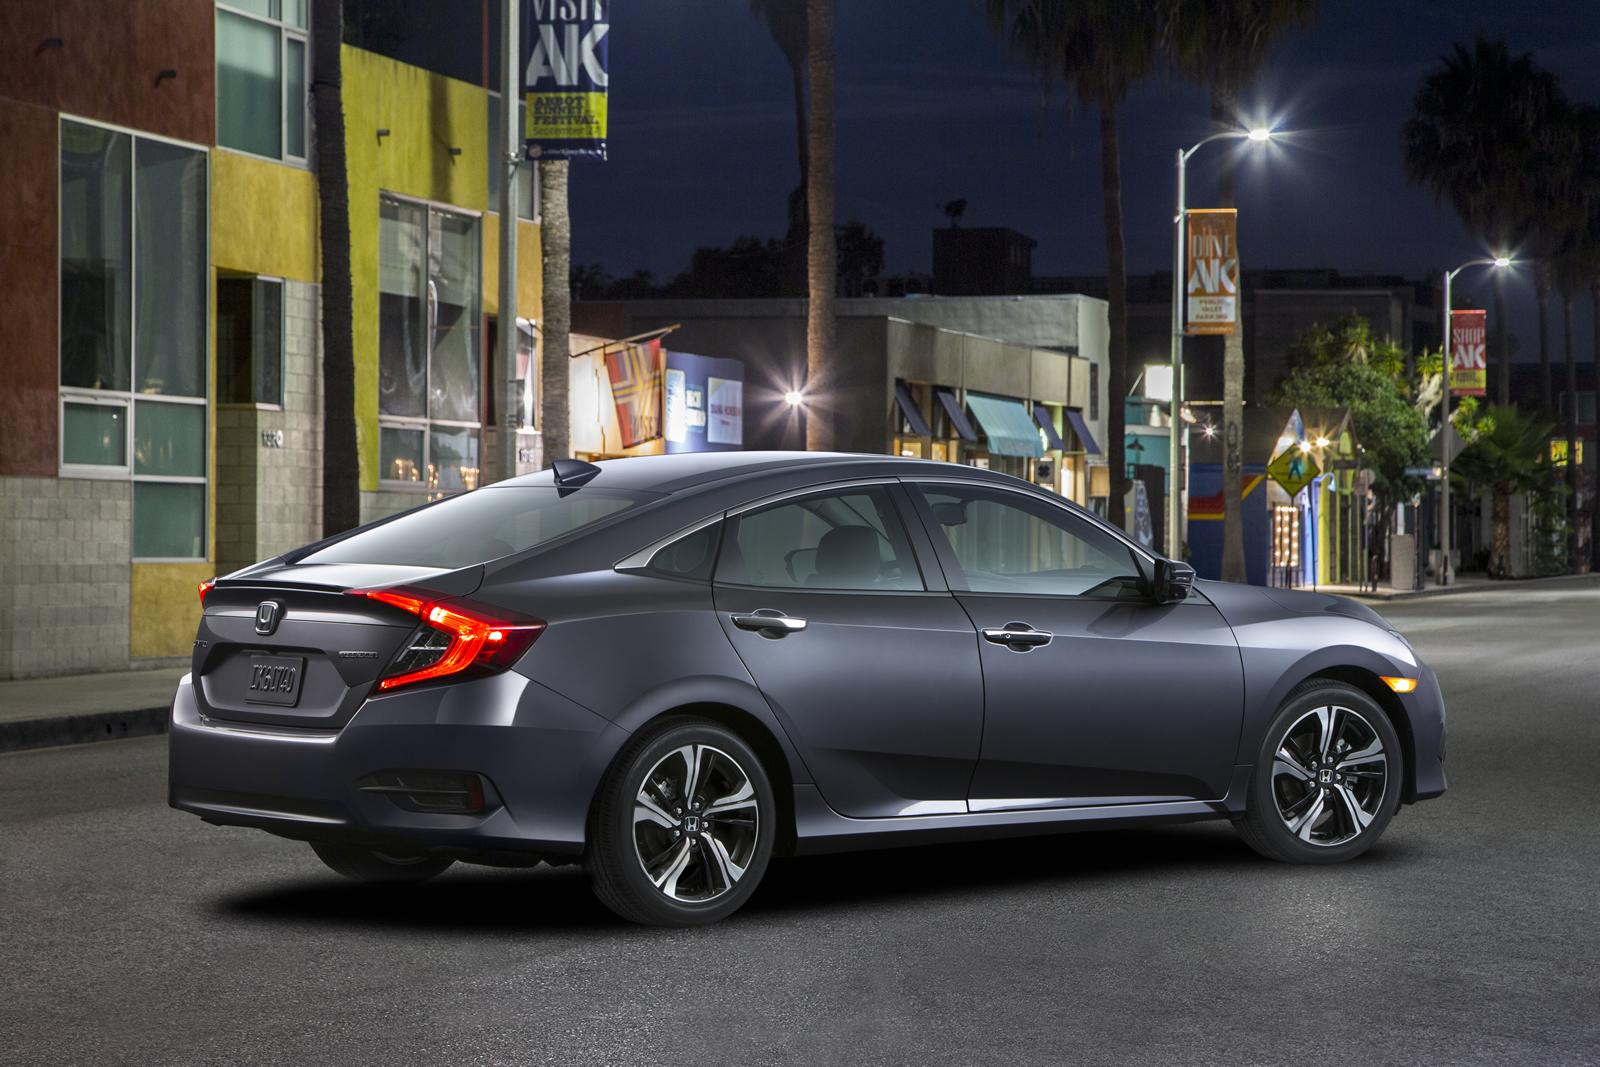 2016 Honda Civic Debuts with Stunning Design and 1.5Liter Turbo